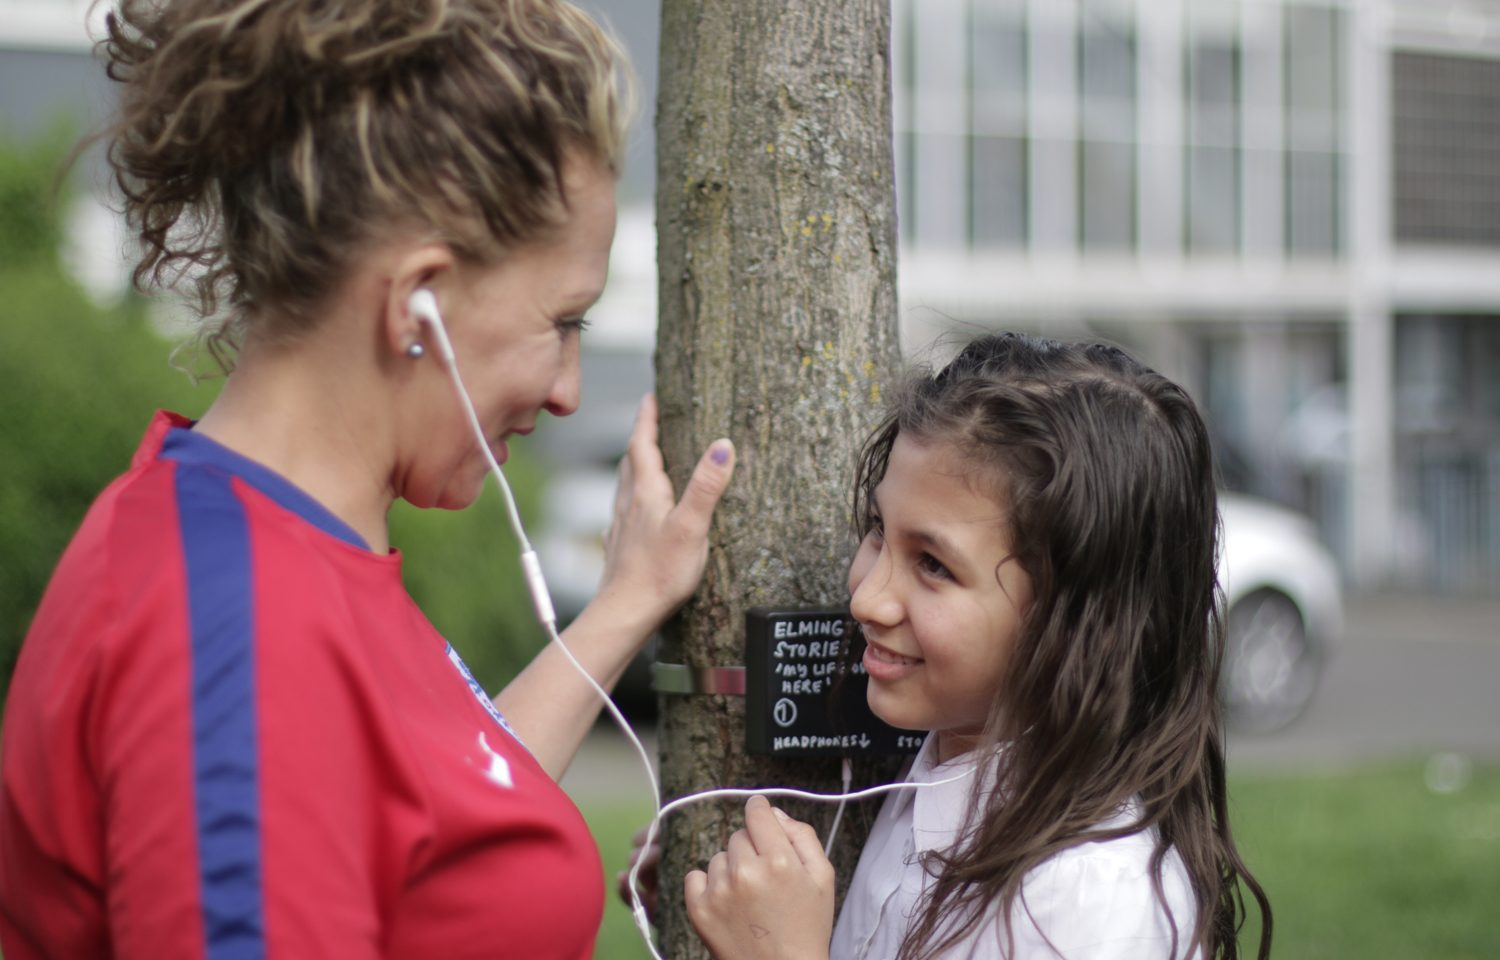 A woman and a girl are looking at each other and smiling. They are each listening to one headphone, and both are touching a tree in the middle of them.